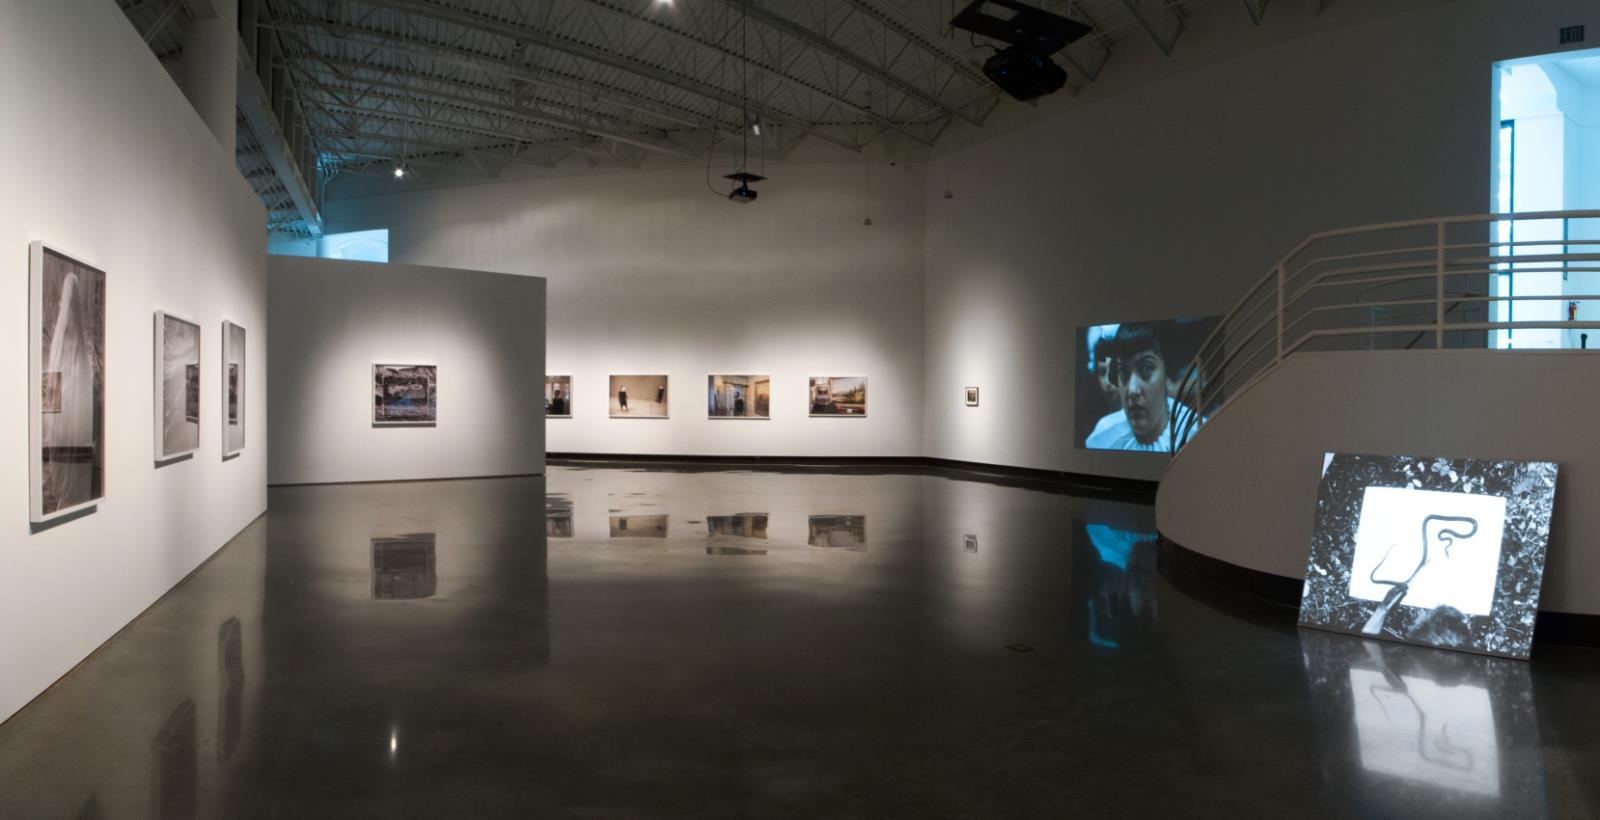 Installation view, Jeff Whetstone (left), Jumana Manna (right) and Pedro Lasch (back wall)